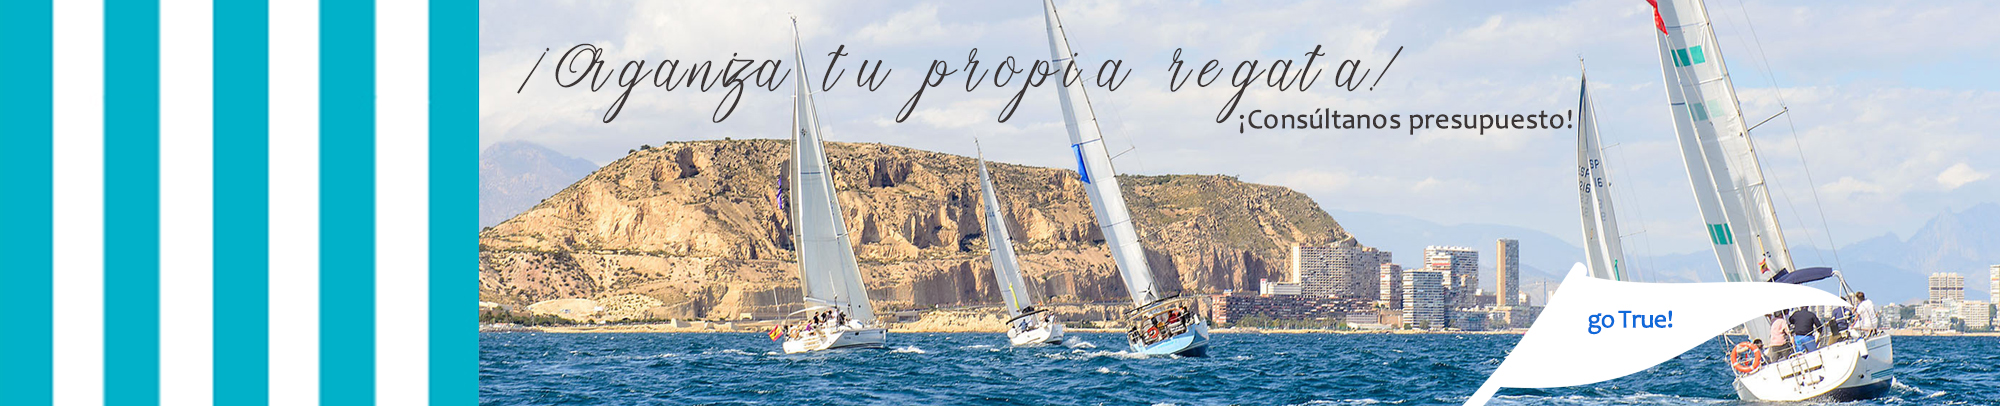 true-blue.es Organiza tu propia regata